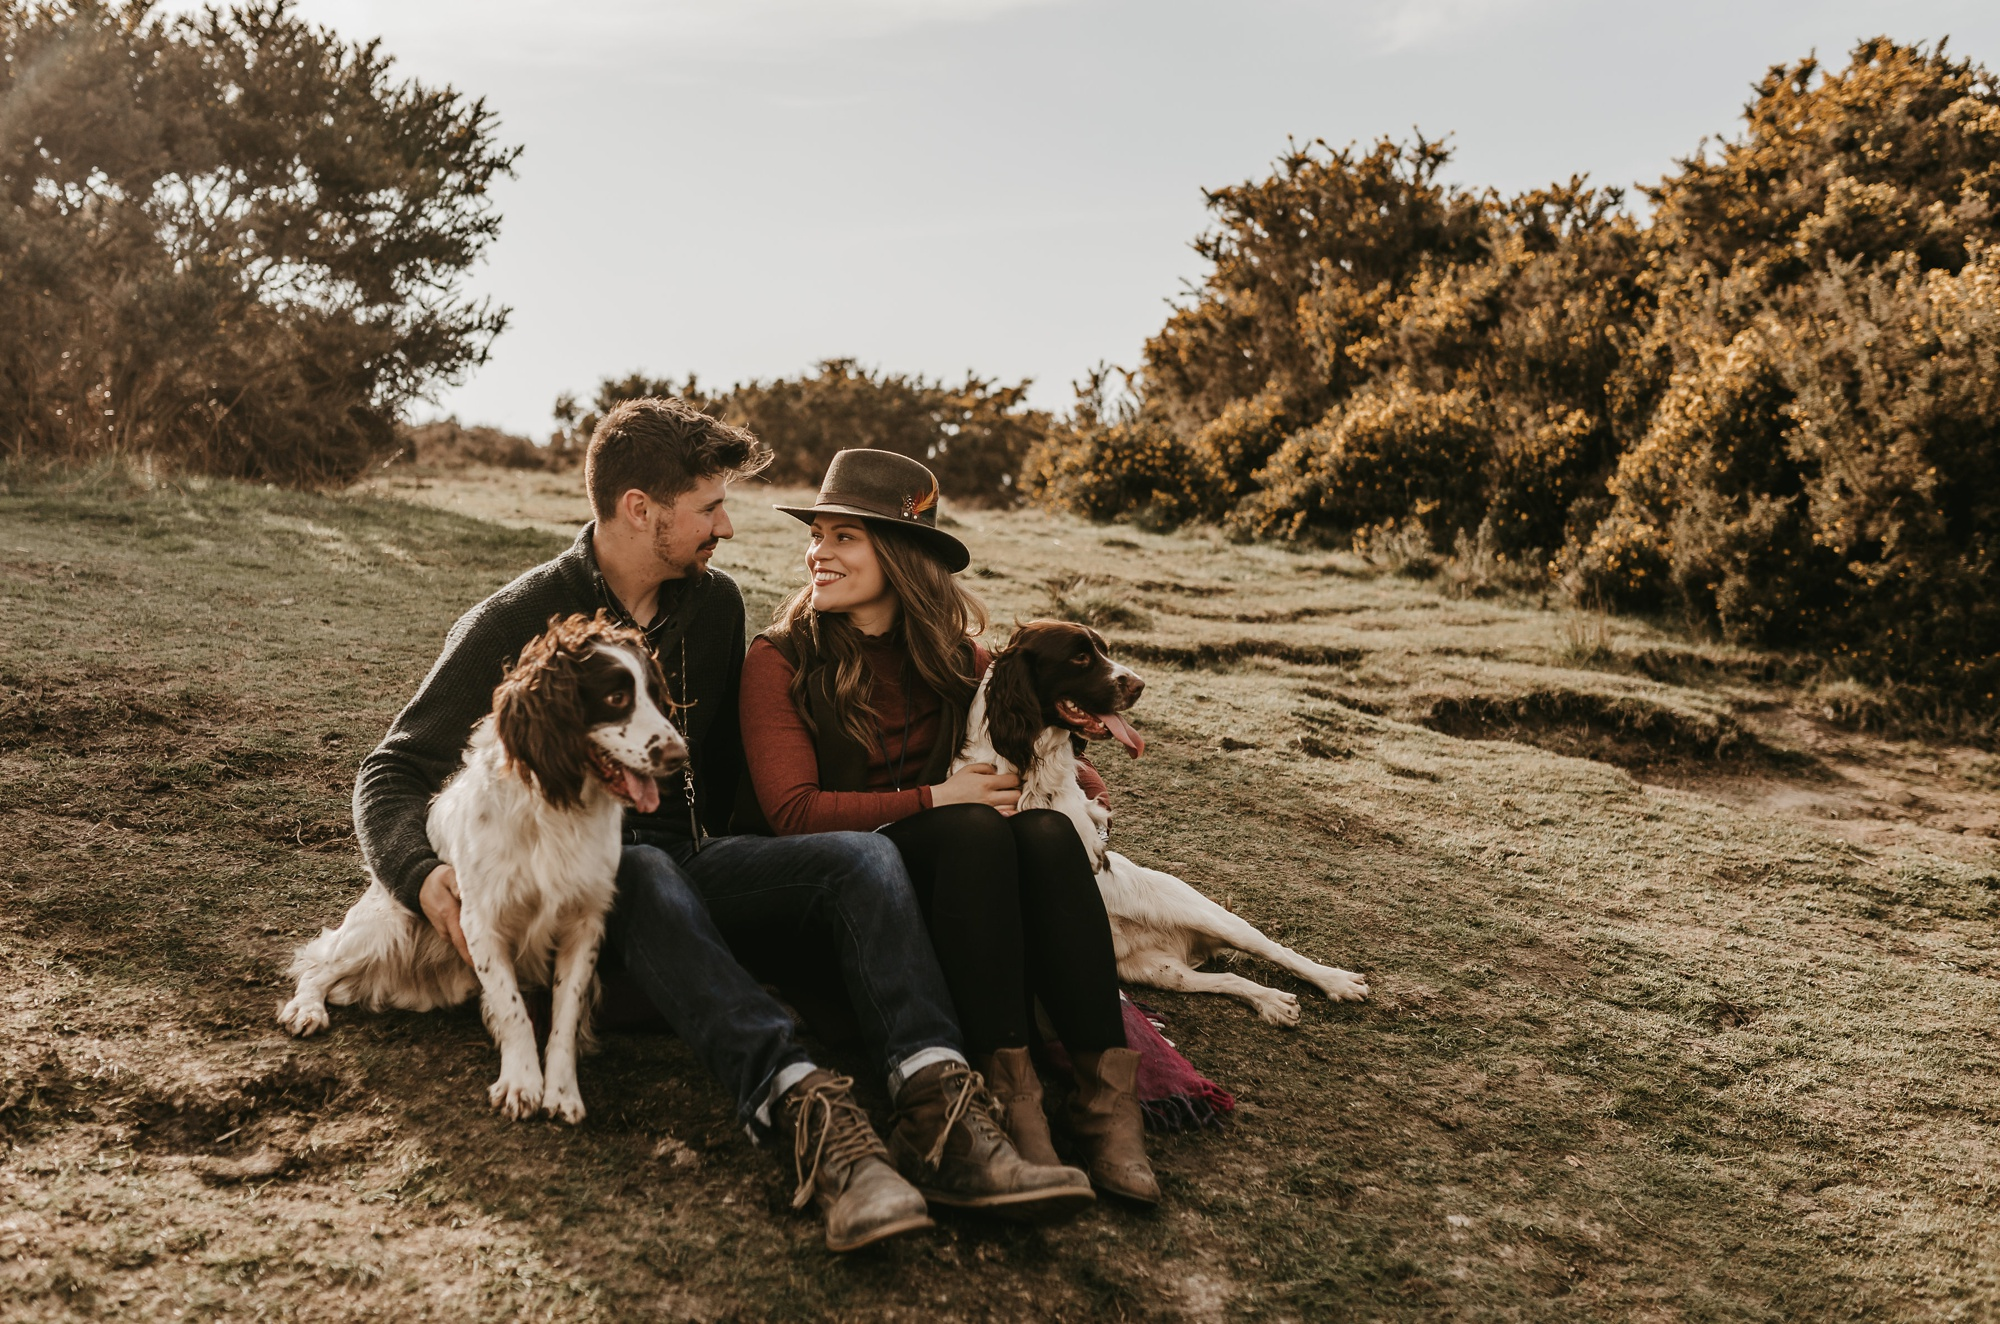 Ashdown Forest anniversary session in Sussex England by Emma Hill Film + Photography